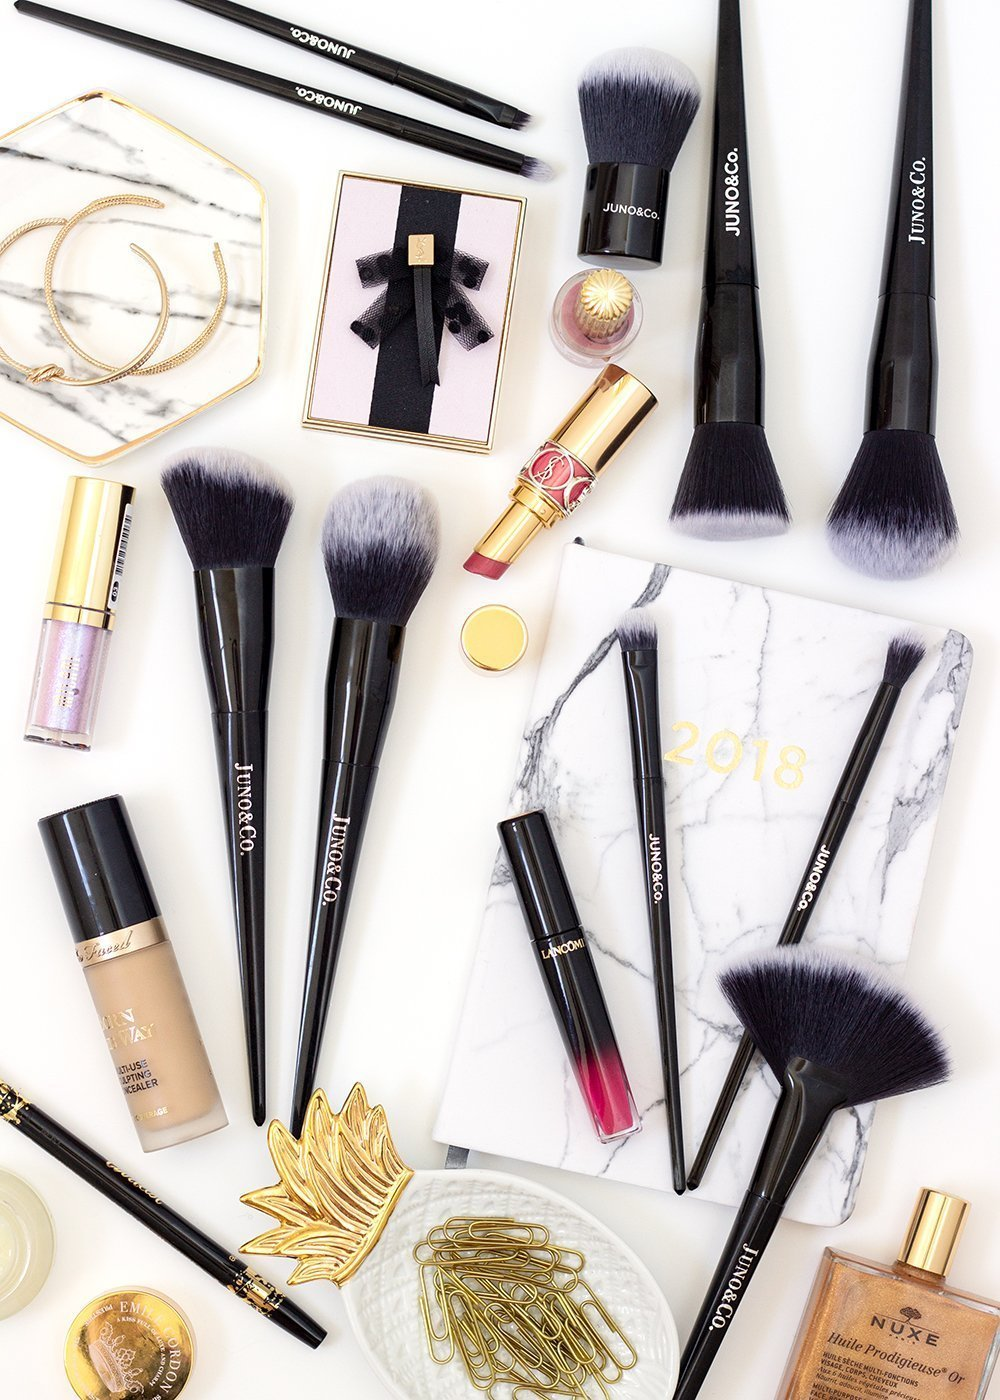 Juno & Co. makeup brushes